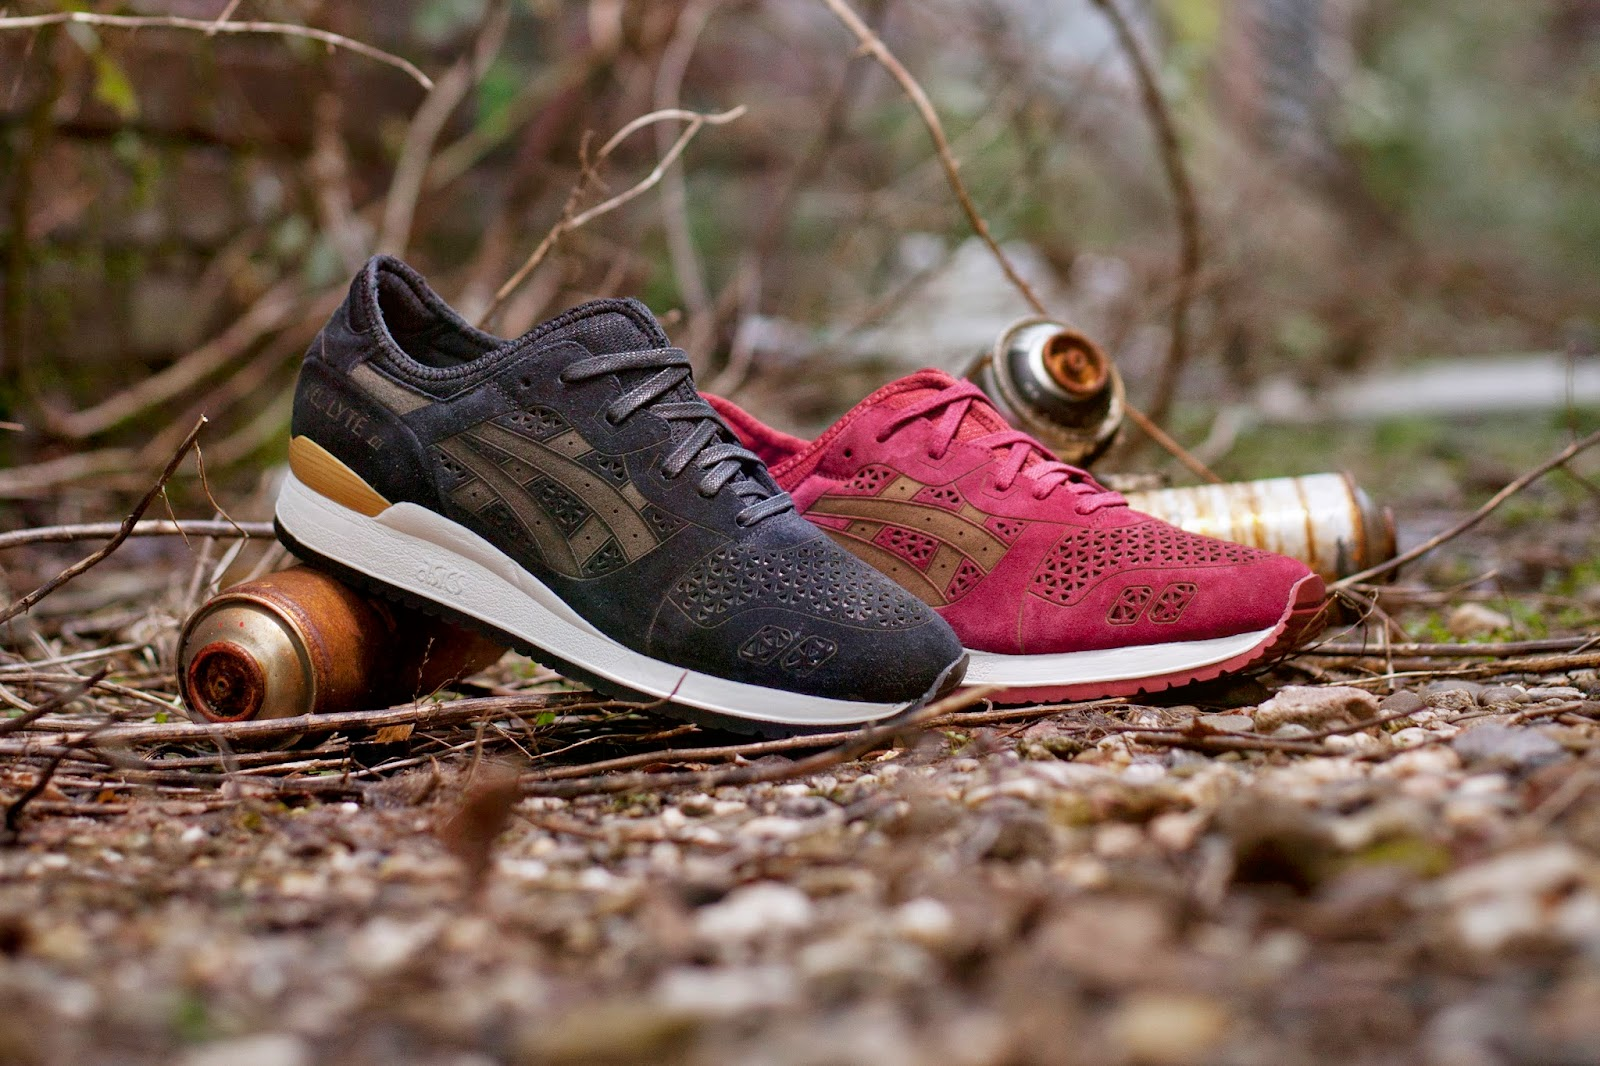 ASICS TIGER 'LASER CUT PACK' - FIRST CUT IS THE COOLEST - ATOMLABOR BLOG